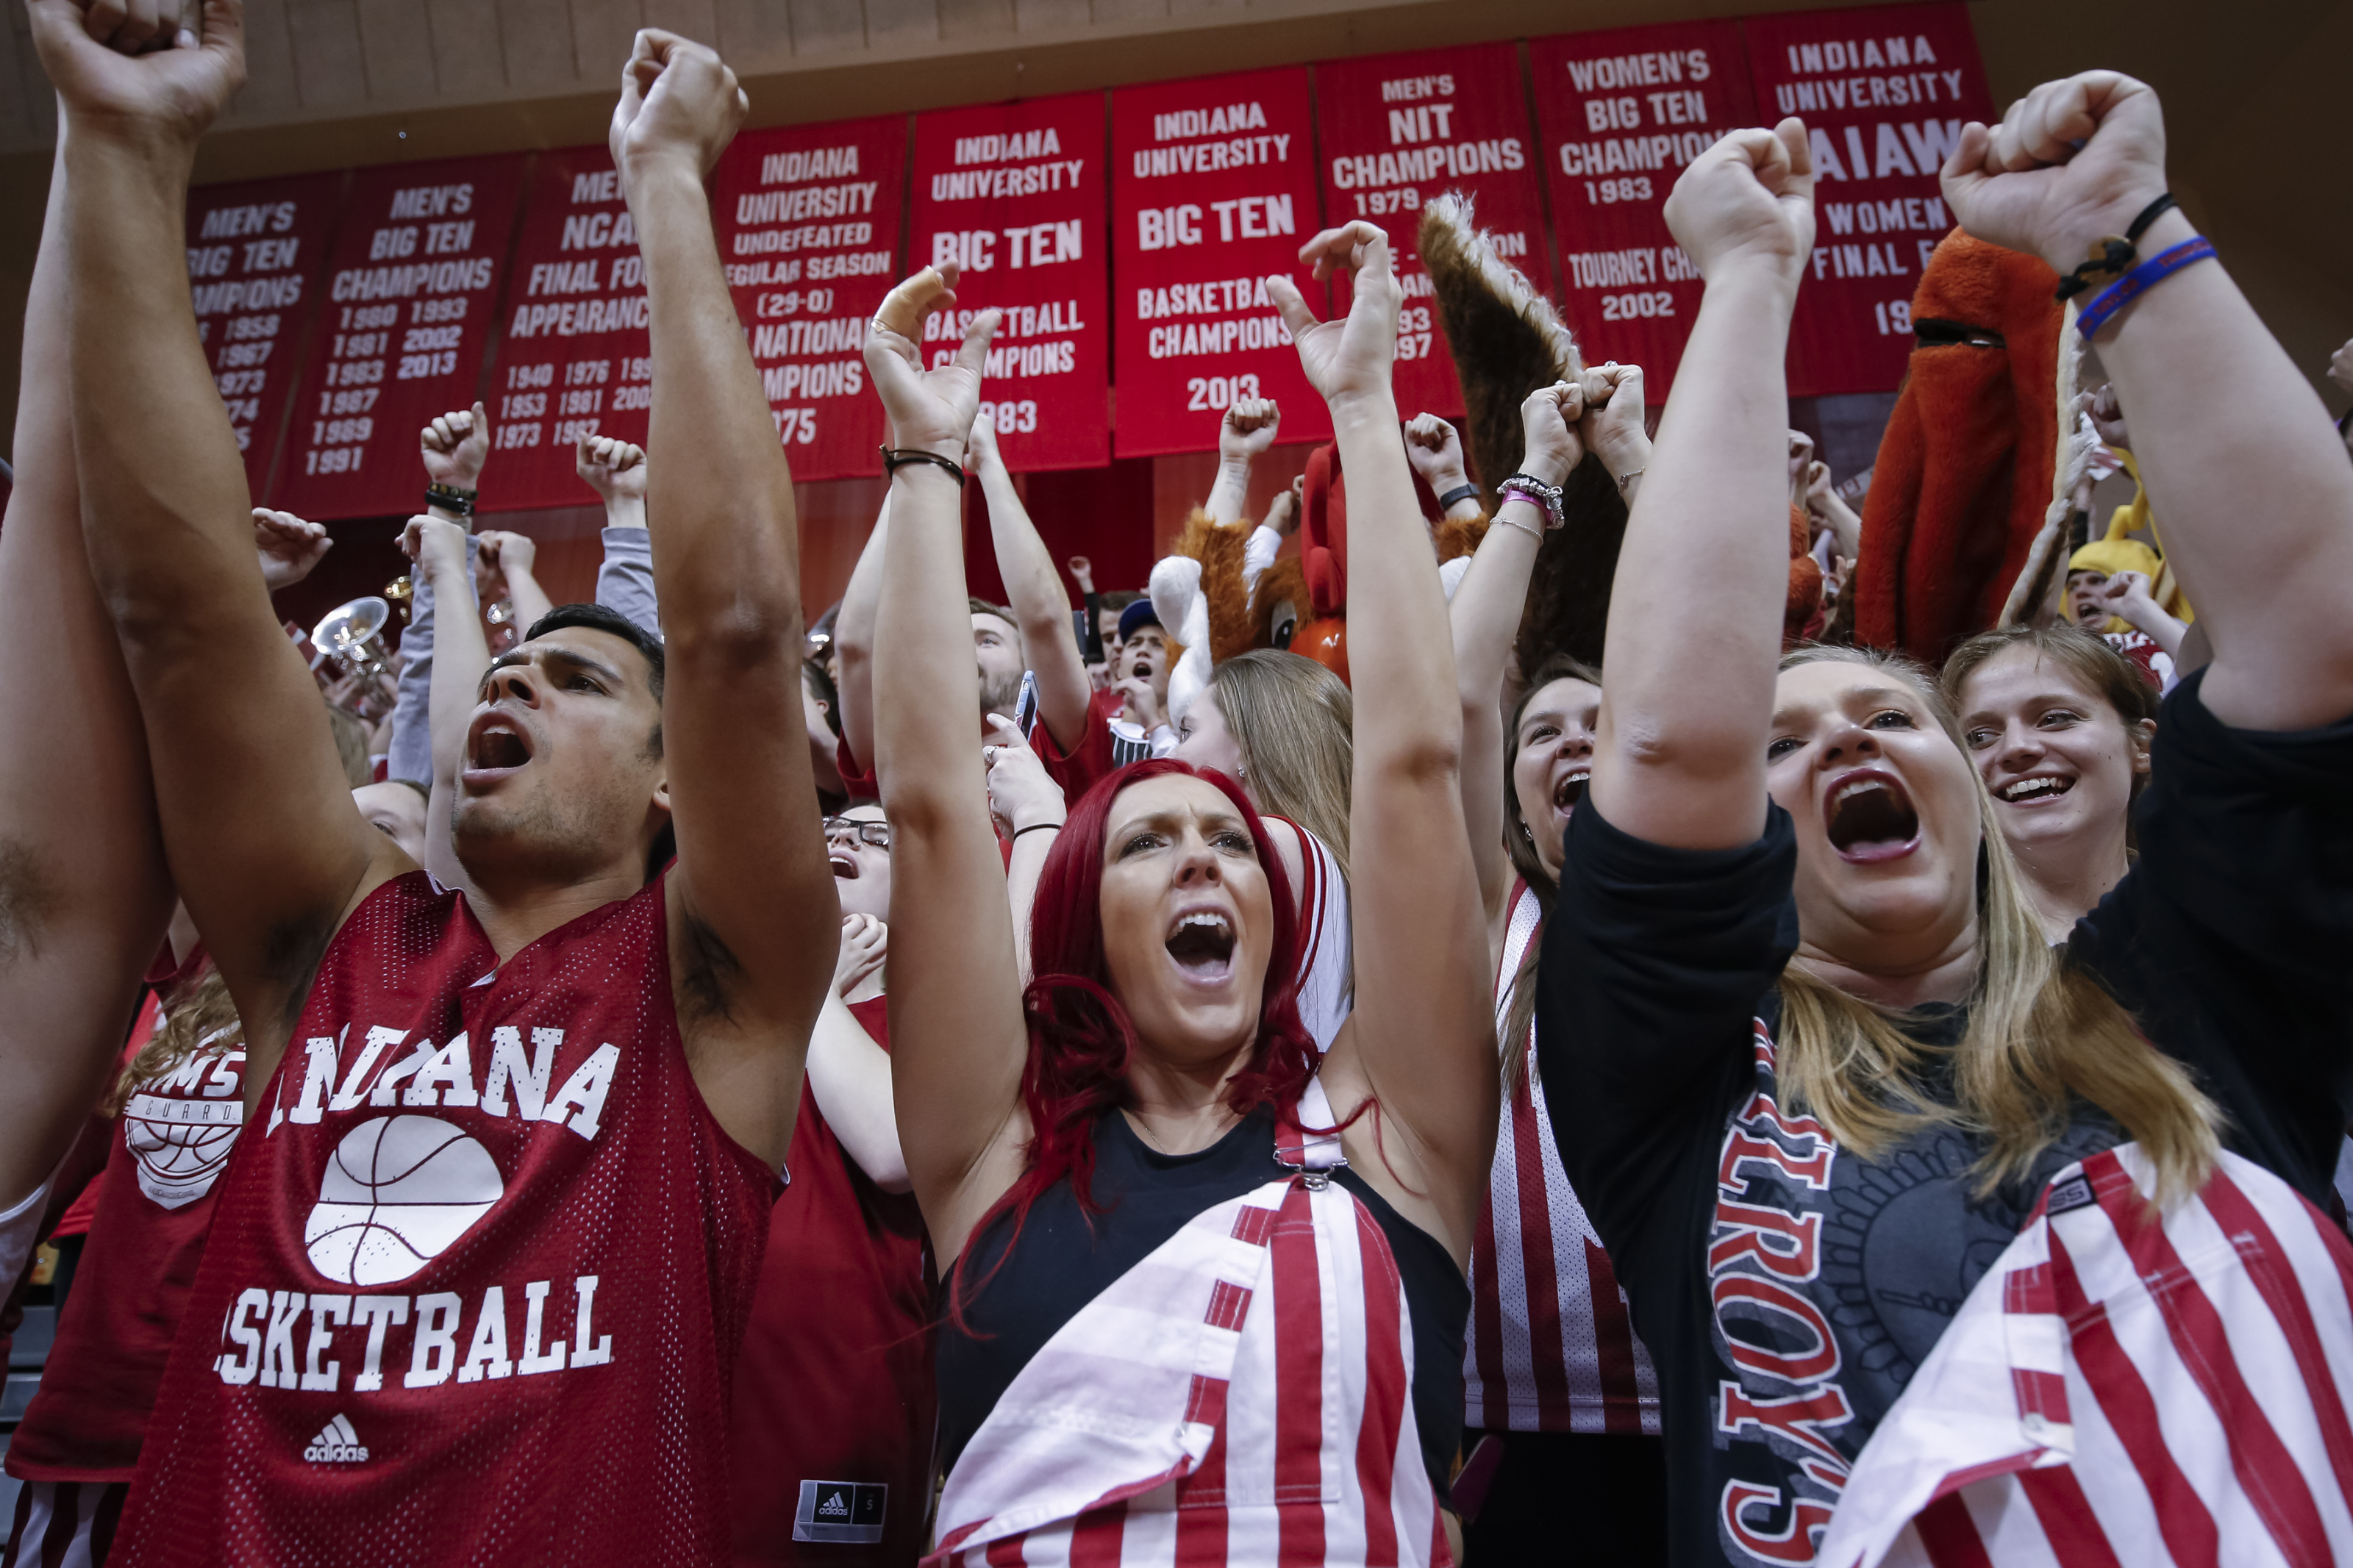 Indiana University News Articles Stories Amp Trends For Today